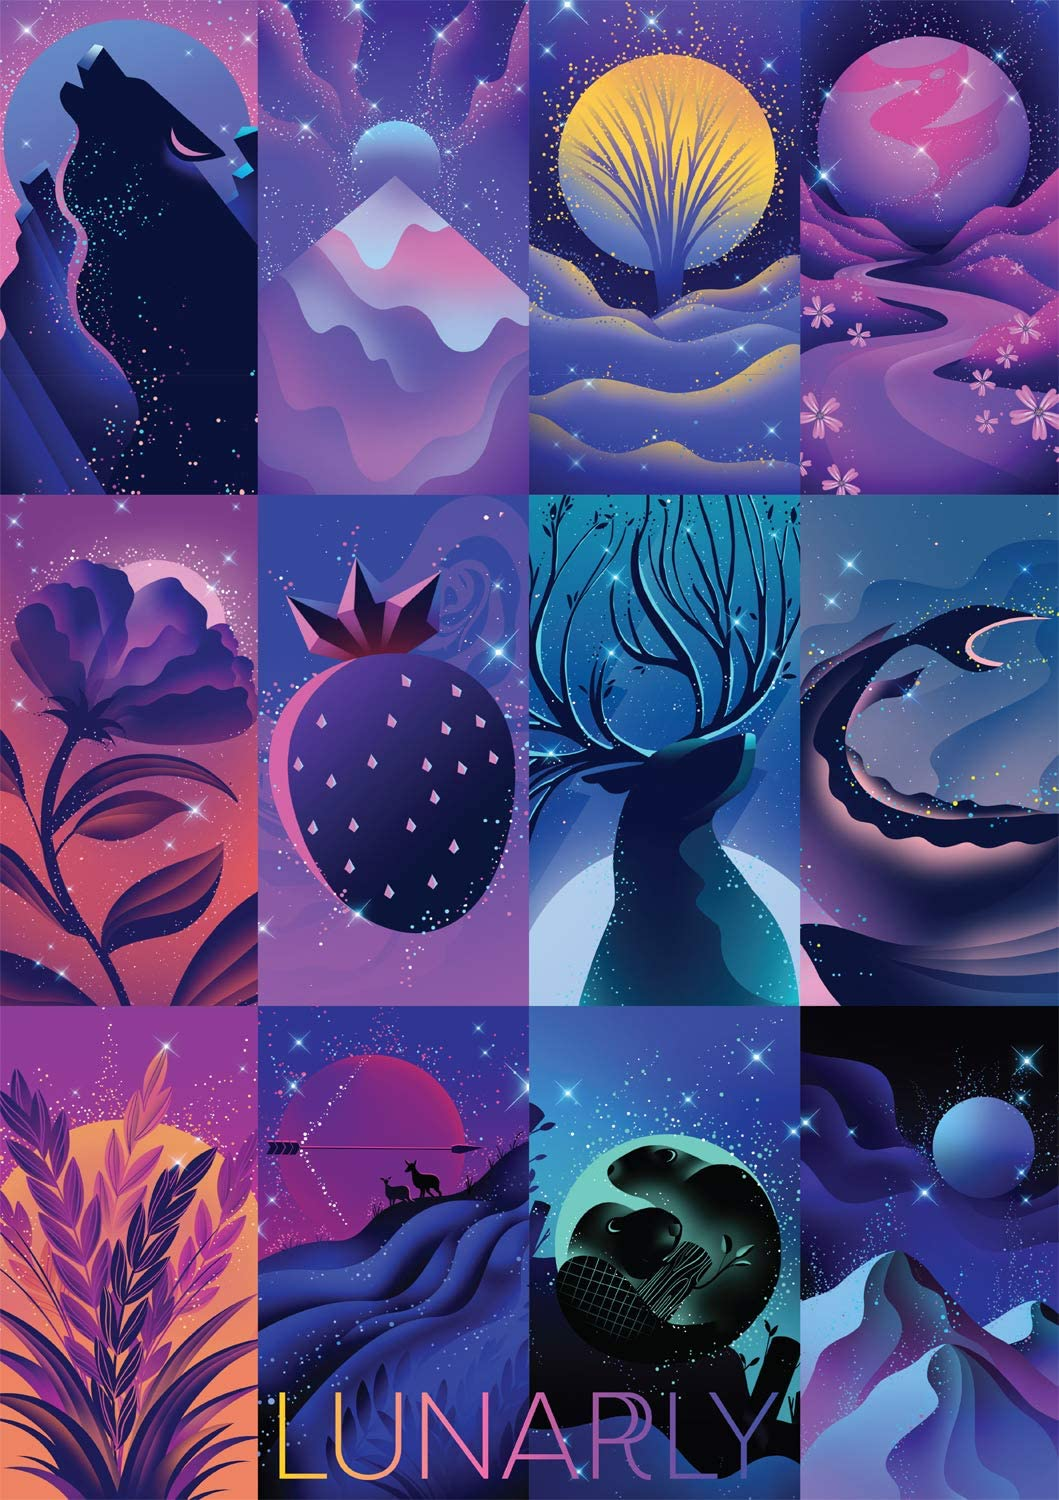 Lunarly: The Twelve Moons Space Jigsaw Puzzle